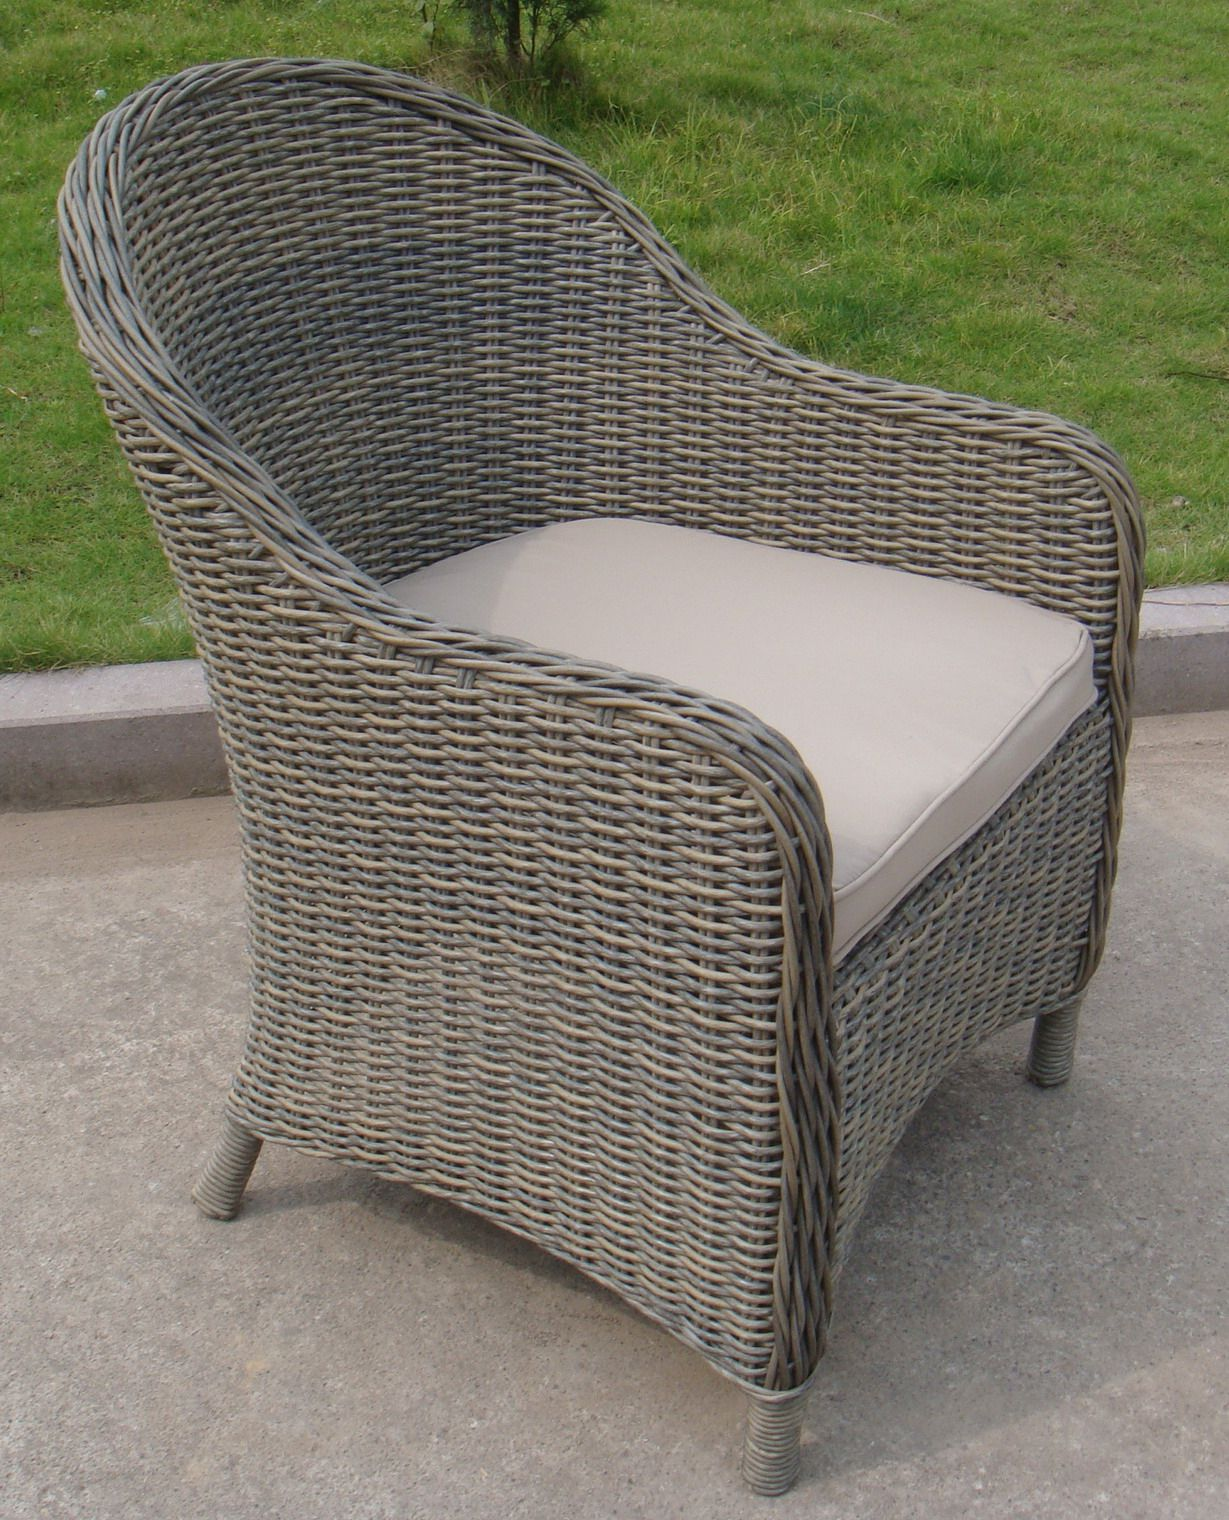 Verniciare Sedia Vimini Rounded Wicker Dining Chair Rattan Wicker Pinterest